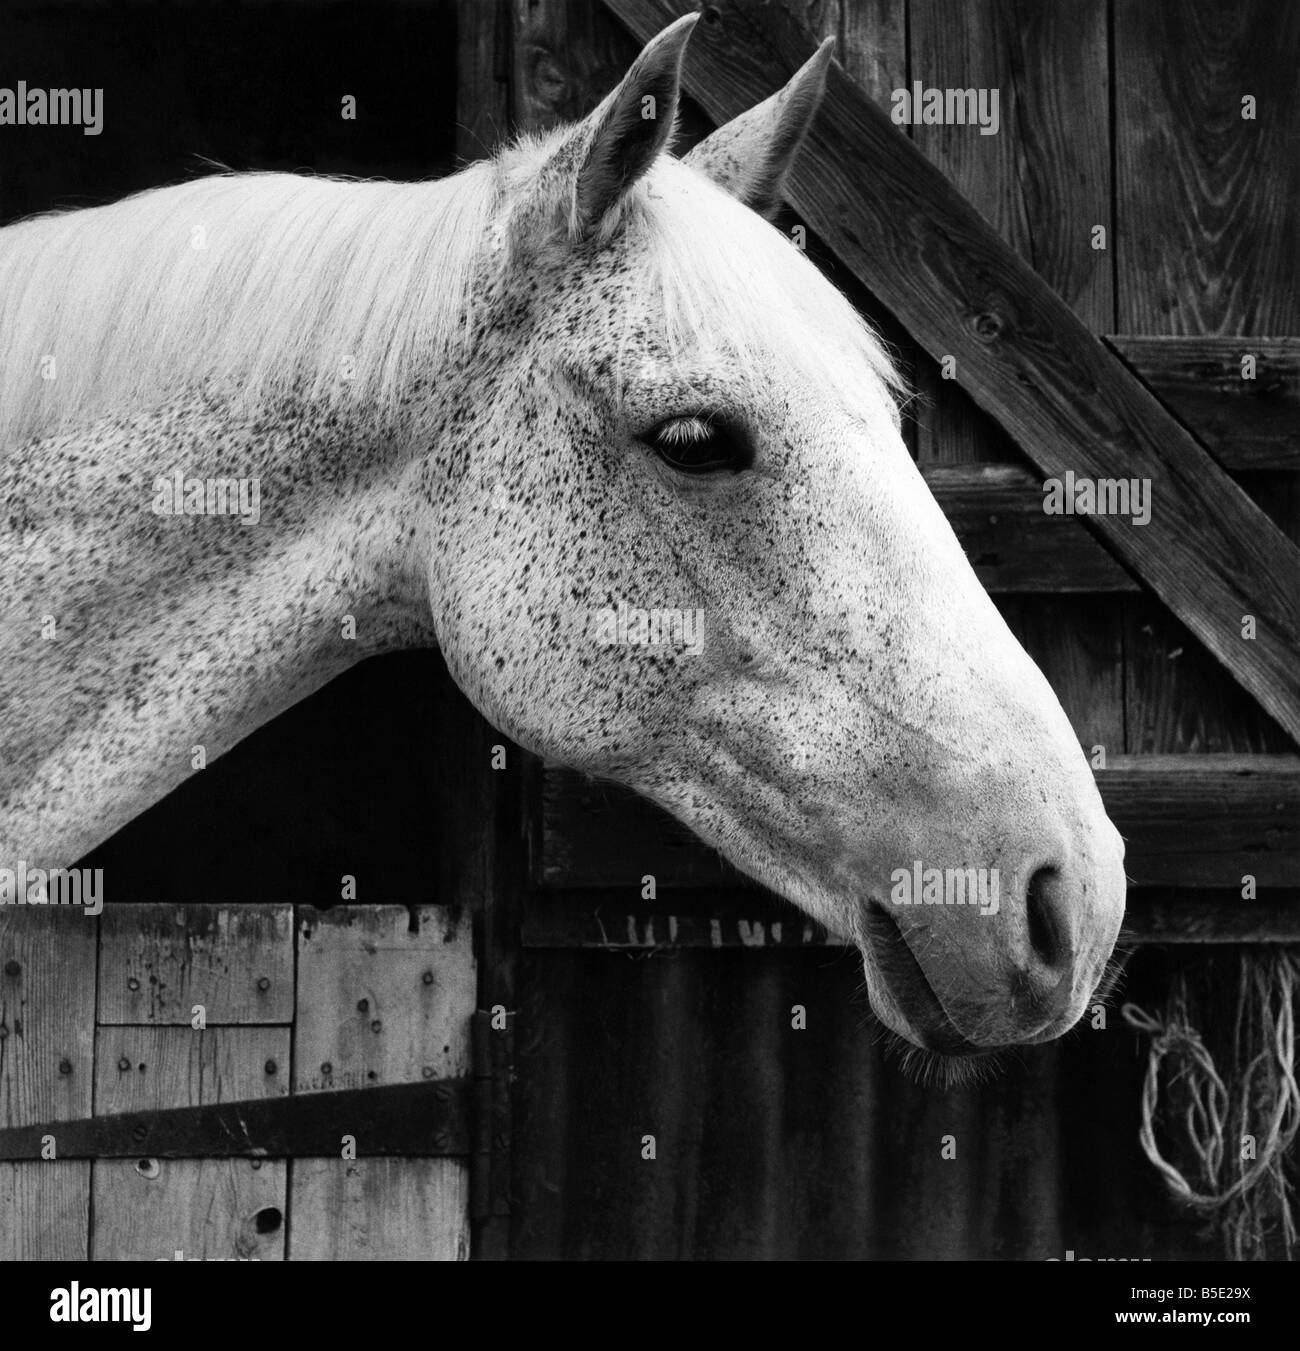 A horse leaning his head out from his stableCirca 1965 - Stock Image